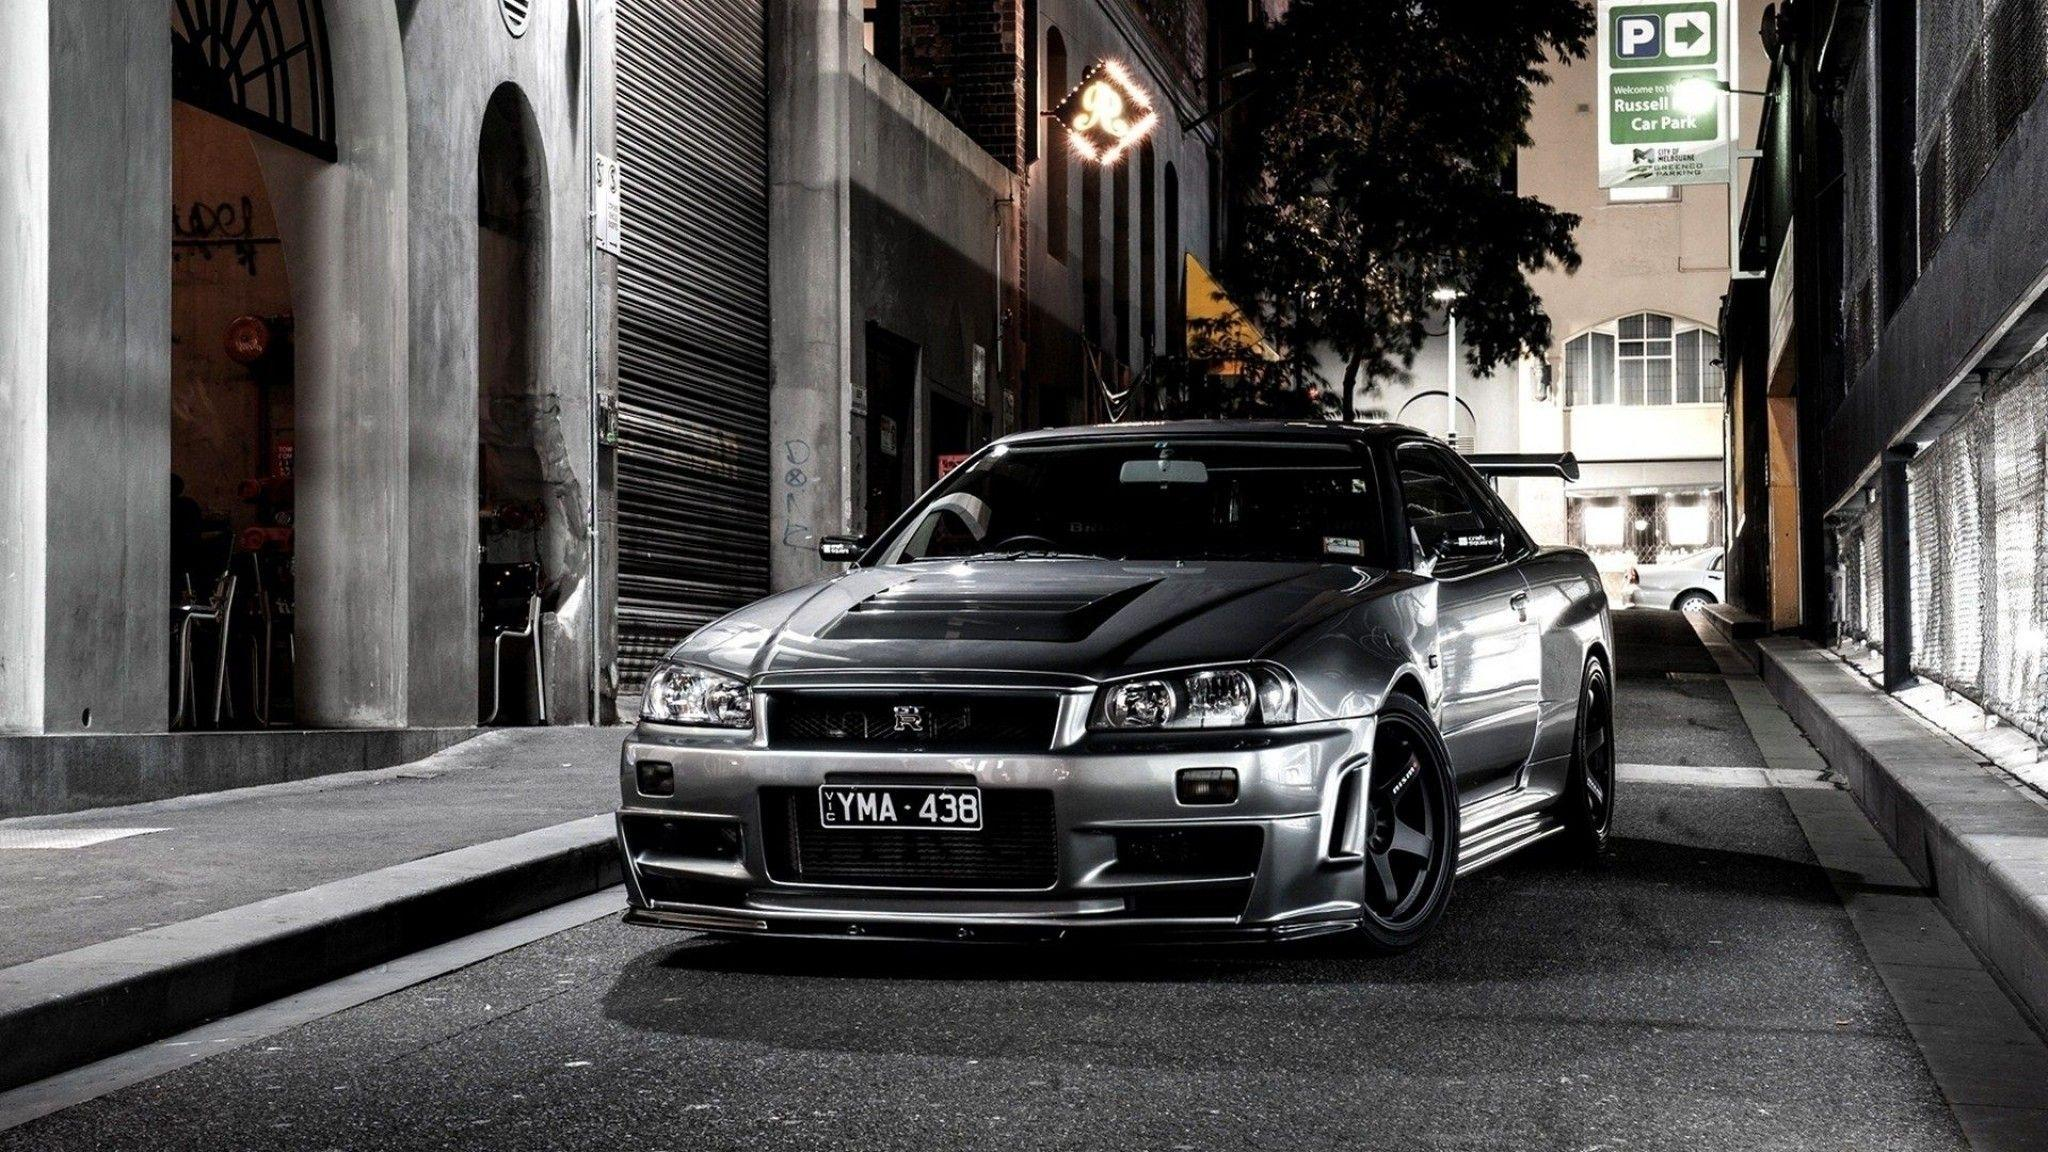 Skyline R34 Wallpapers Hd Wallpaper Cave